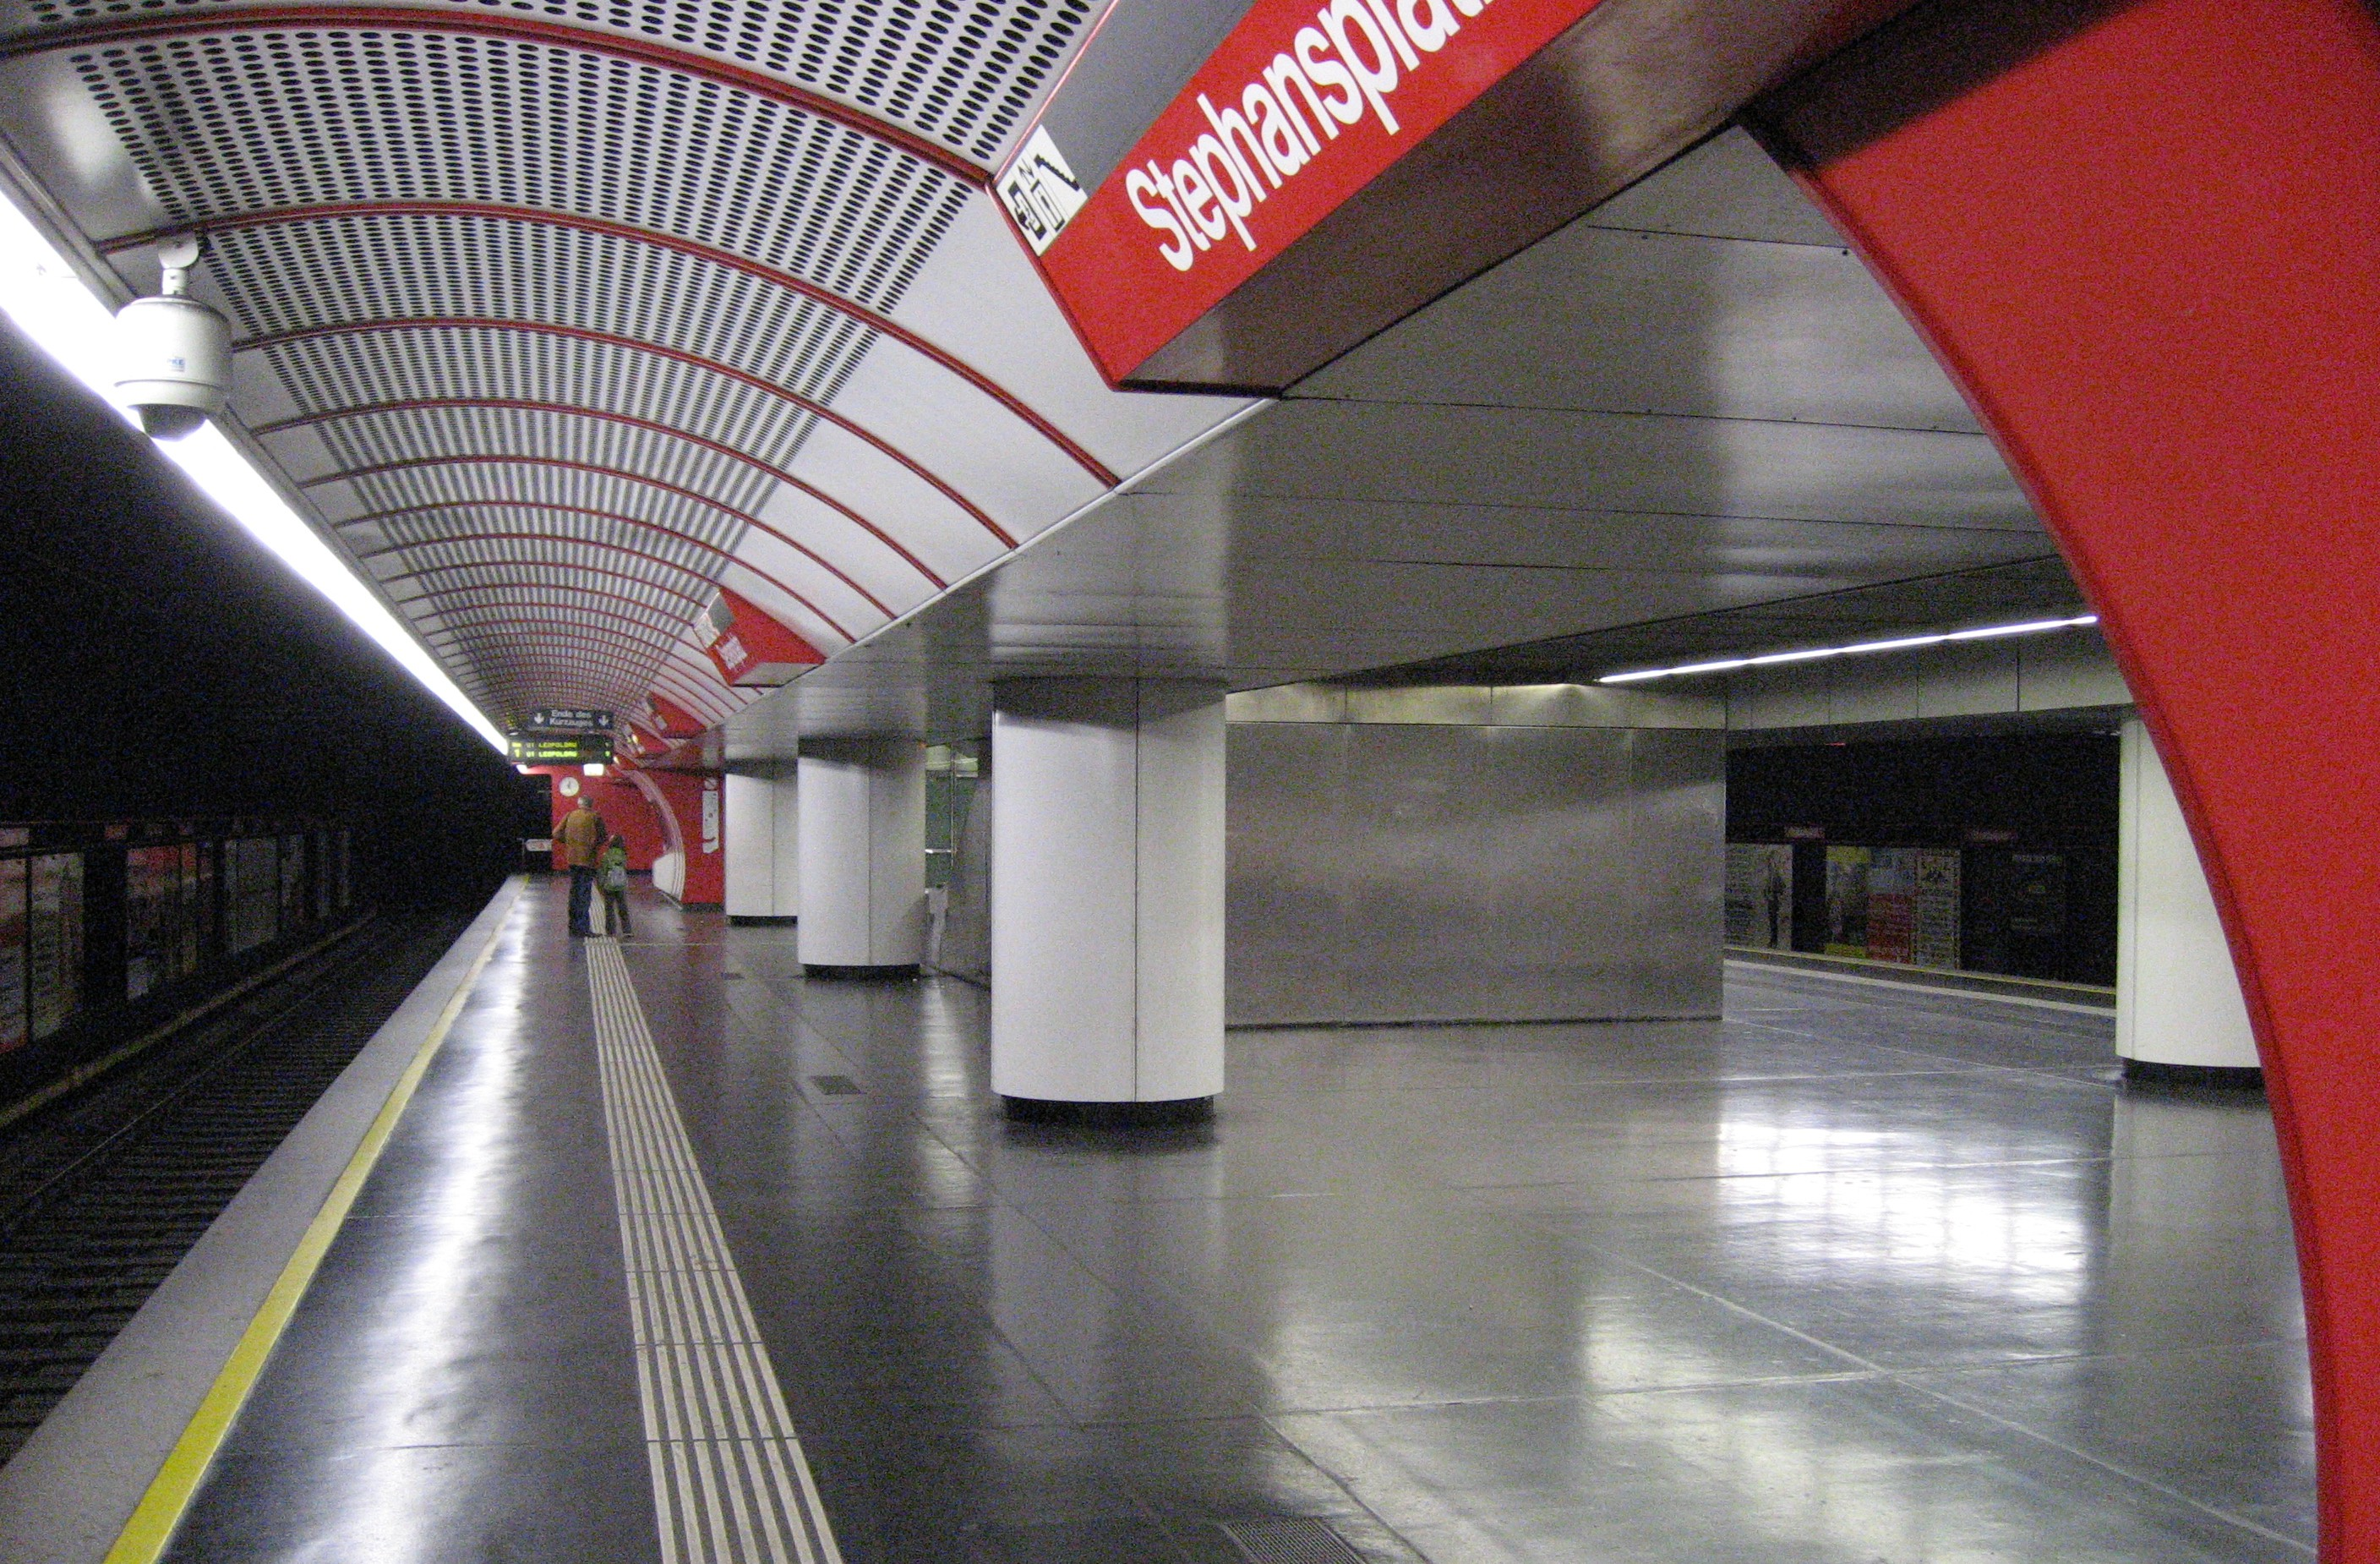 Vienna's Ridiculous Metro System and Why I Couldn't Wait To Leave